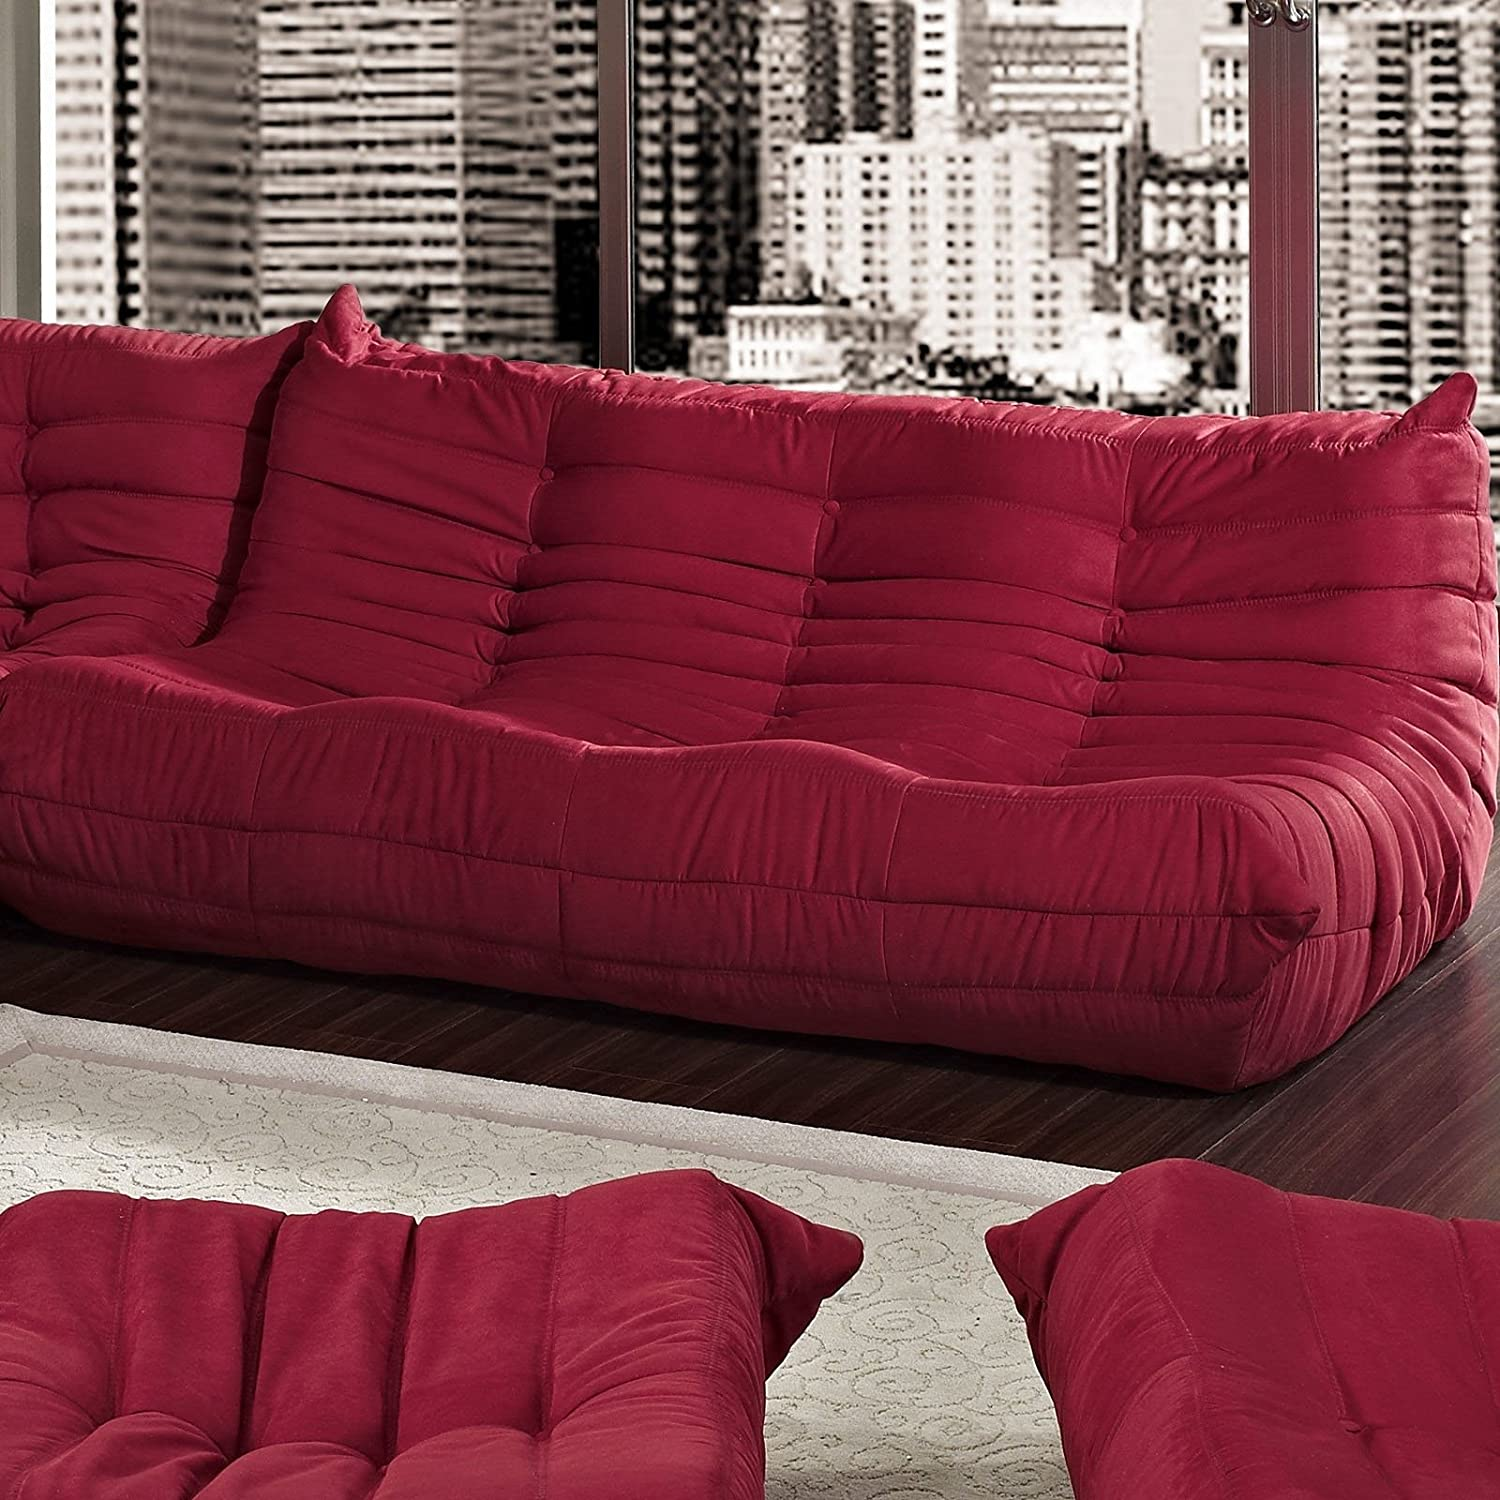 amazoncom modway waverunner modular sectional sofa in red kitchen u0026 dining : red sofa sectional - Sectionals, Sofas & Couches